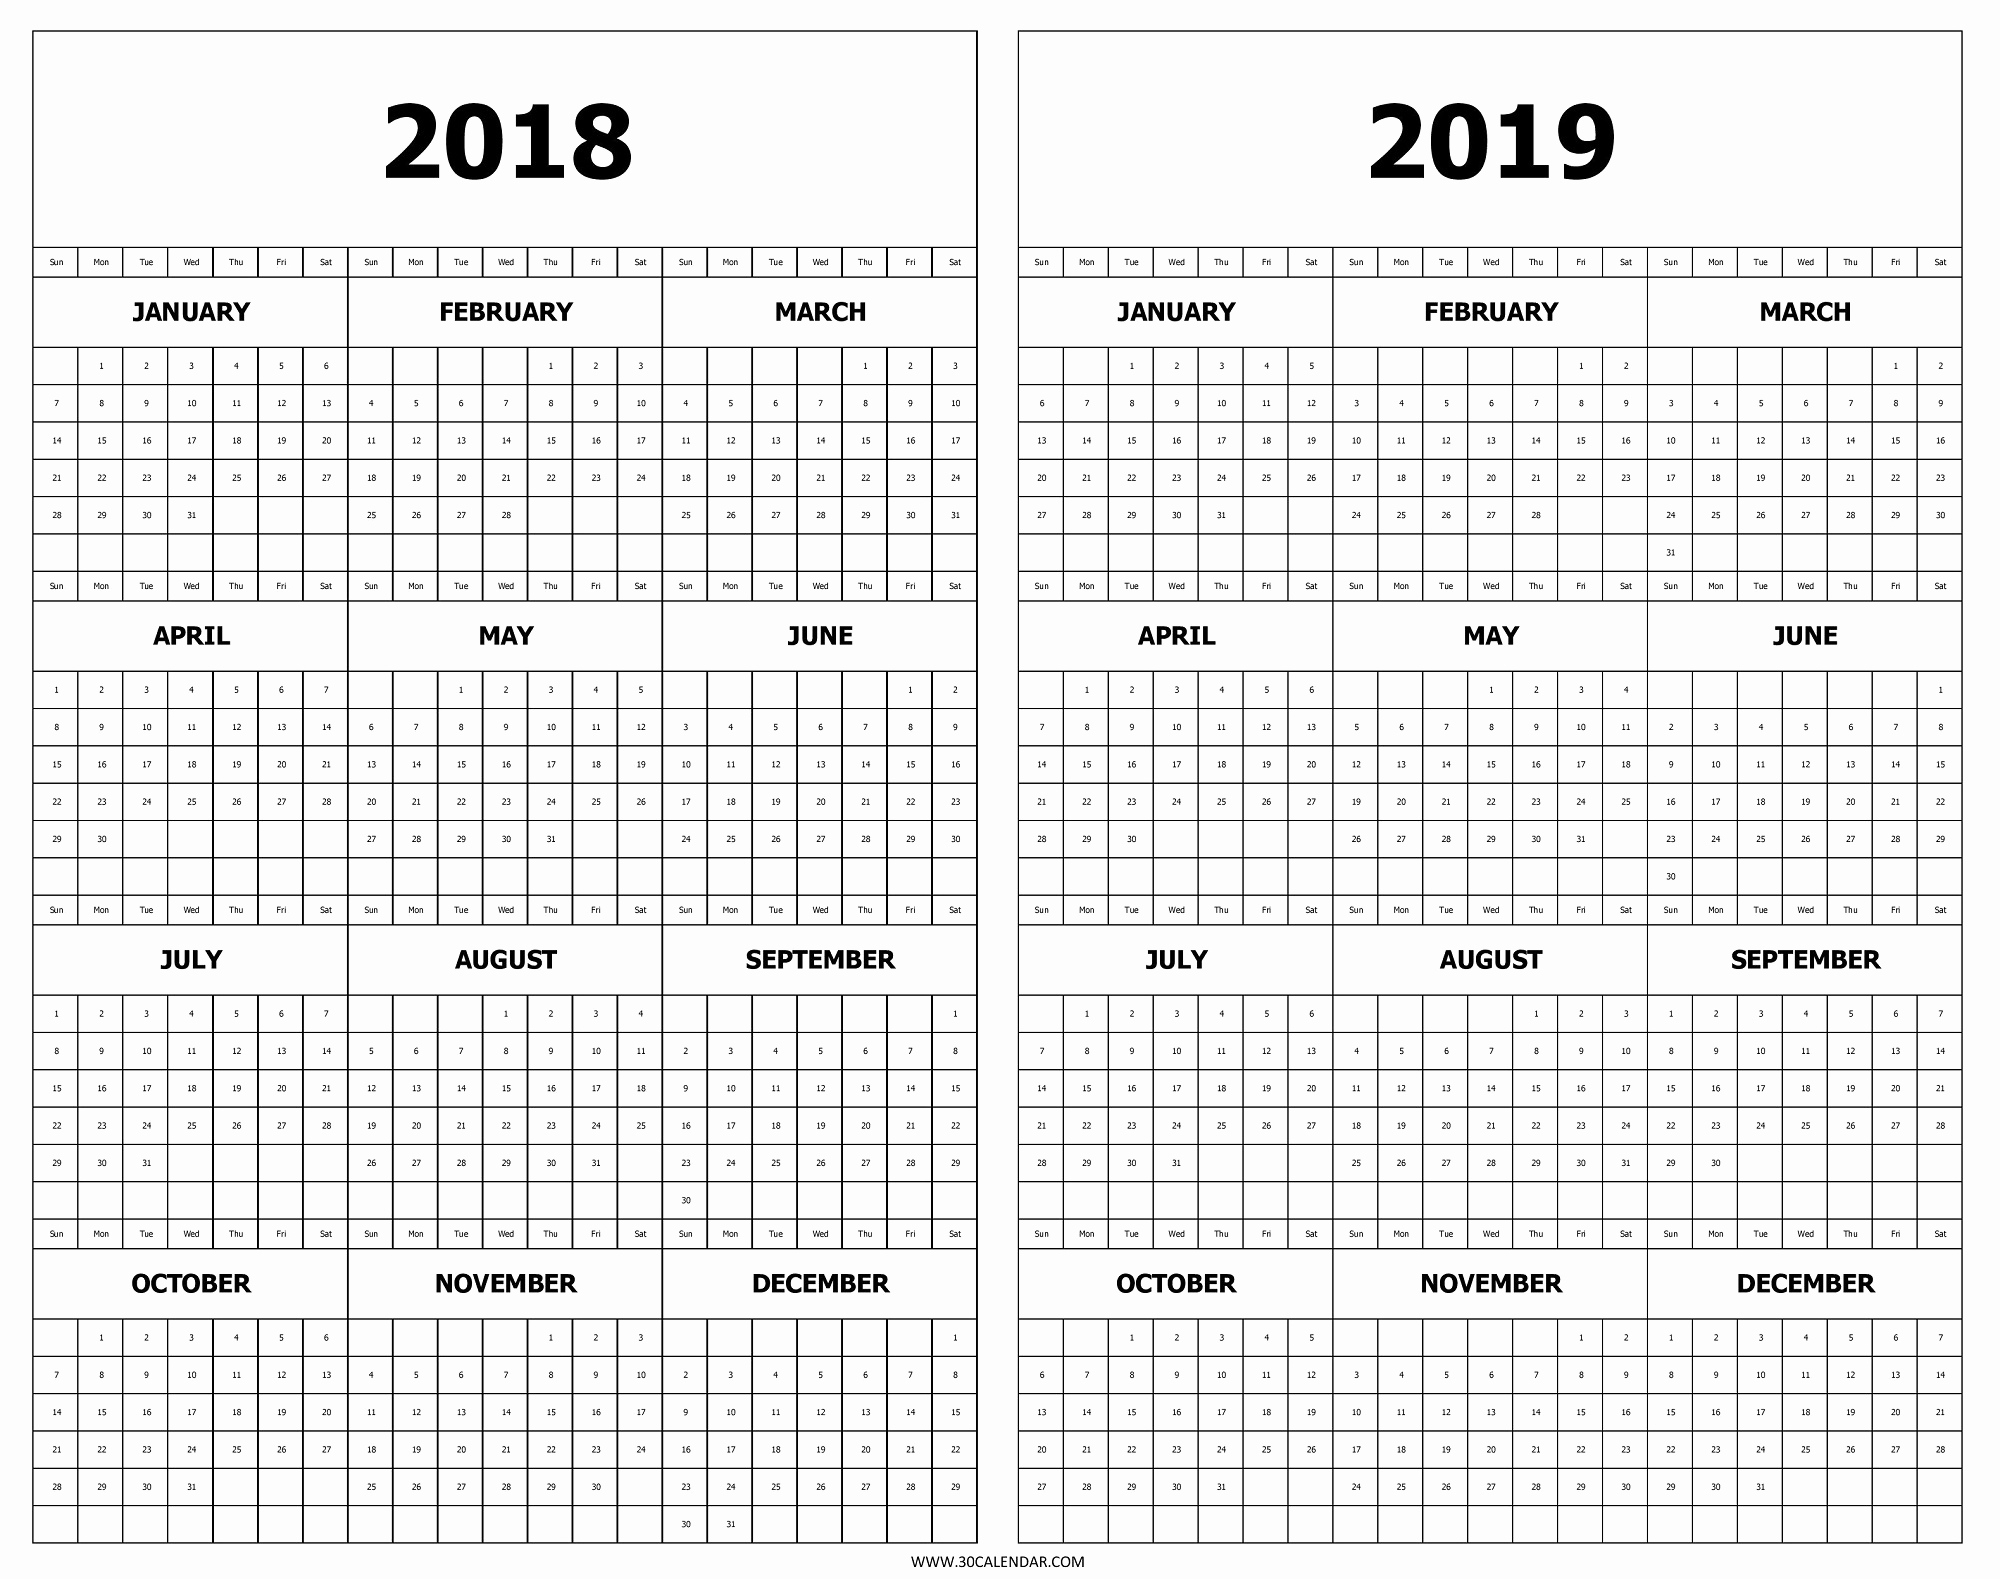 Unique 53 Sample Yearly Calendar At A Glance 2019 Printable throughout Year At A Glance Printable Calendar 2019/2020